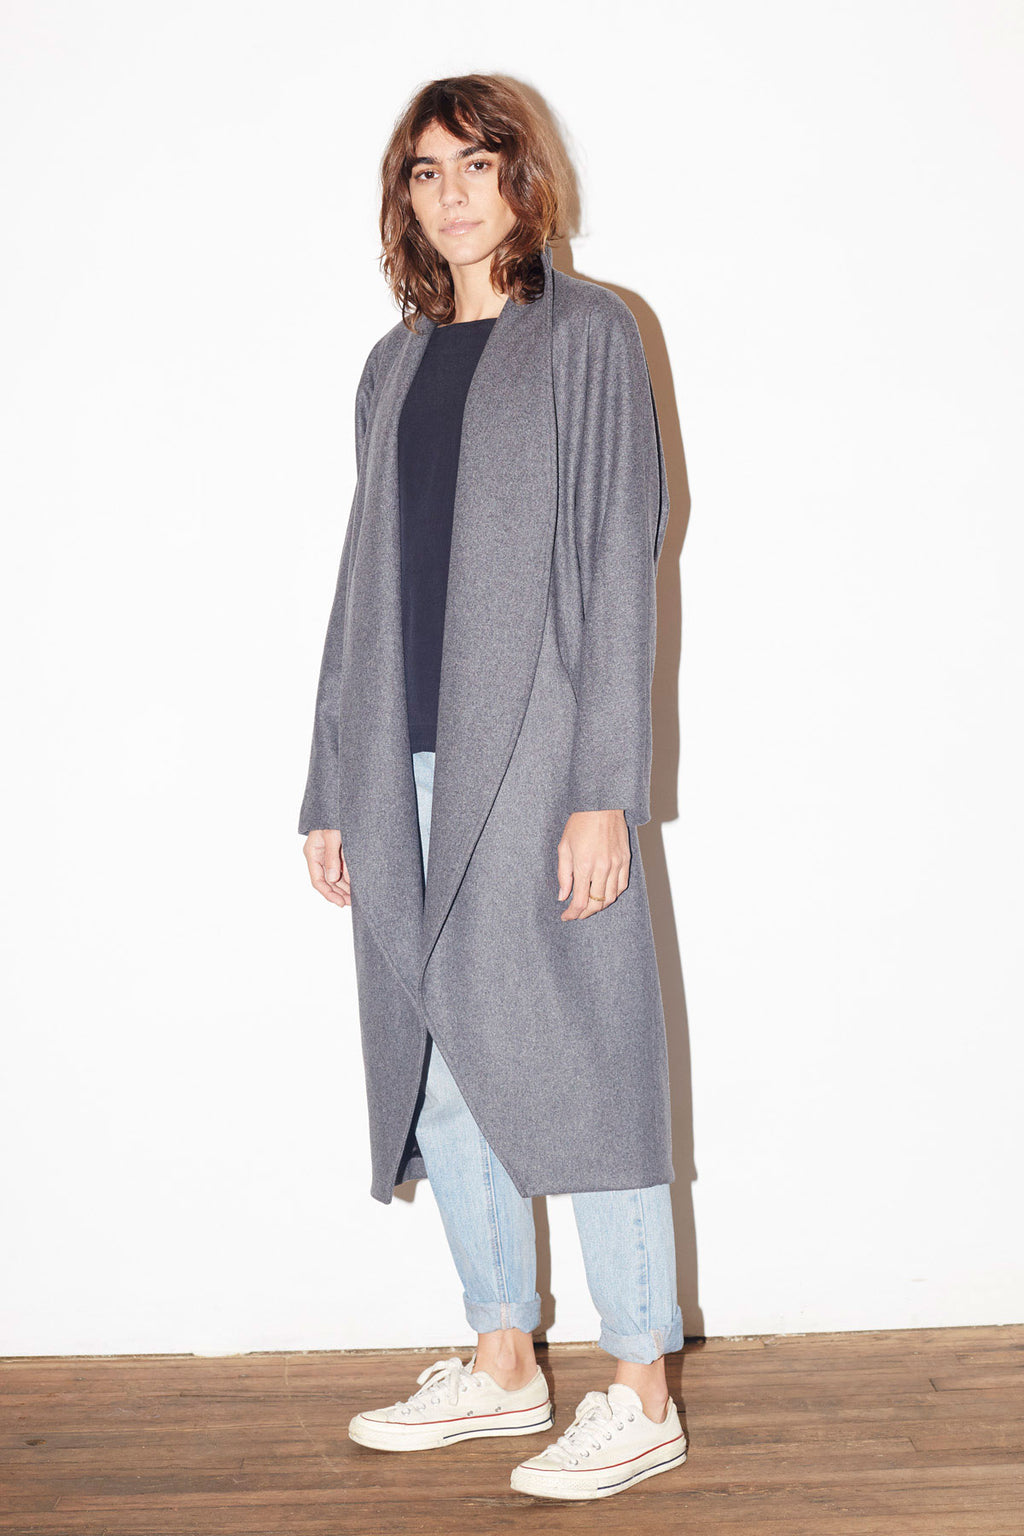 Charcoal Grey Cashmere Wool Escape Coat